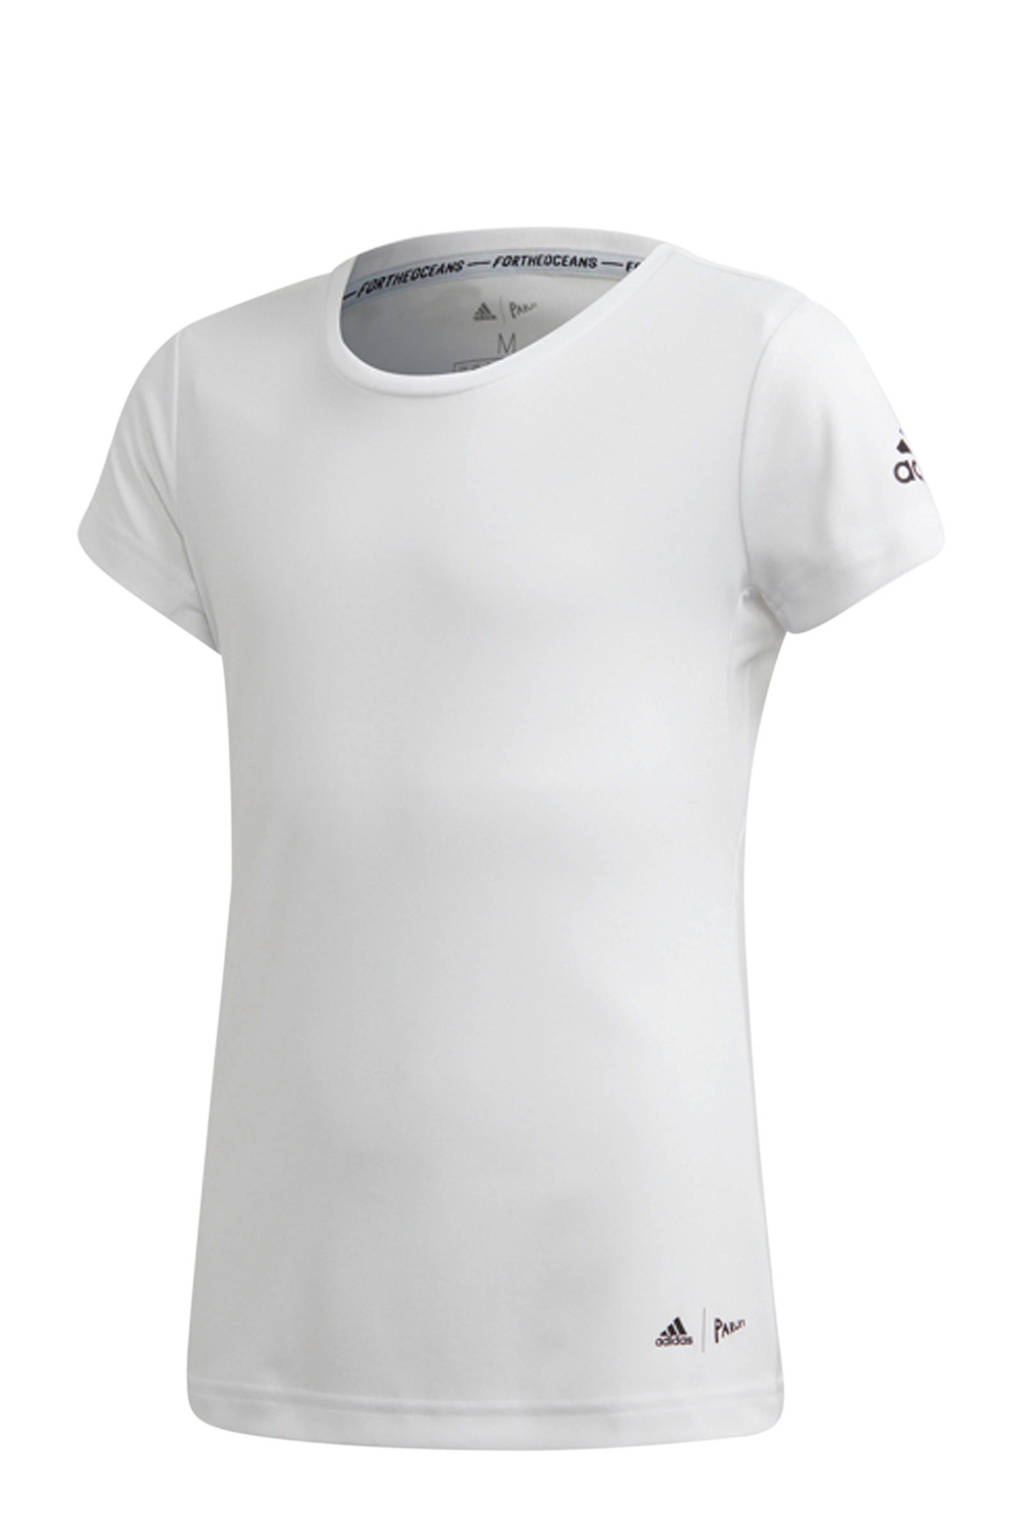 adidas Parley sport T-shirt wit, Wit